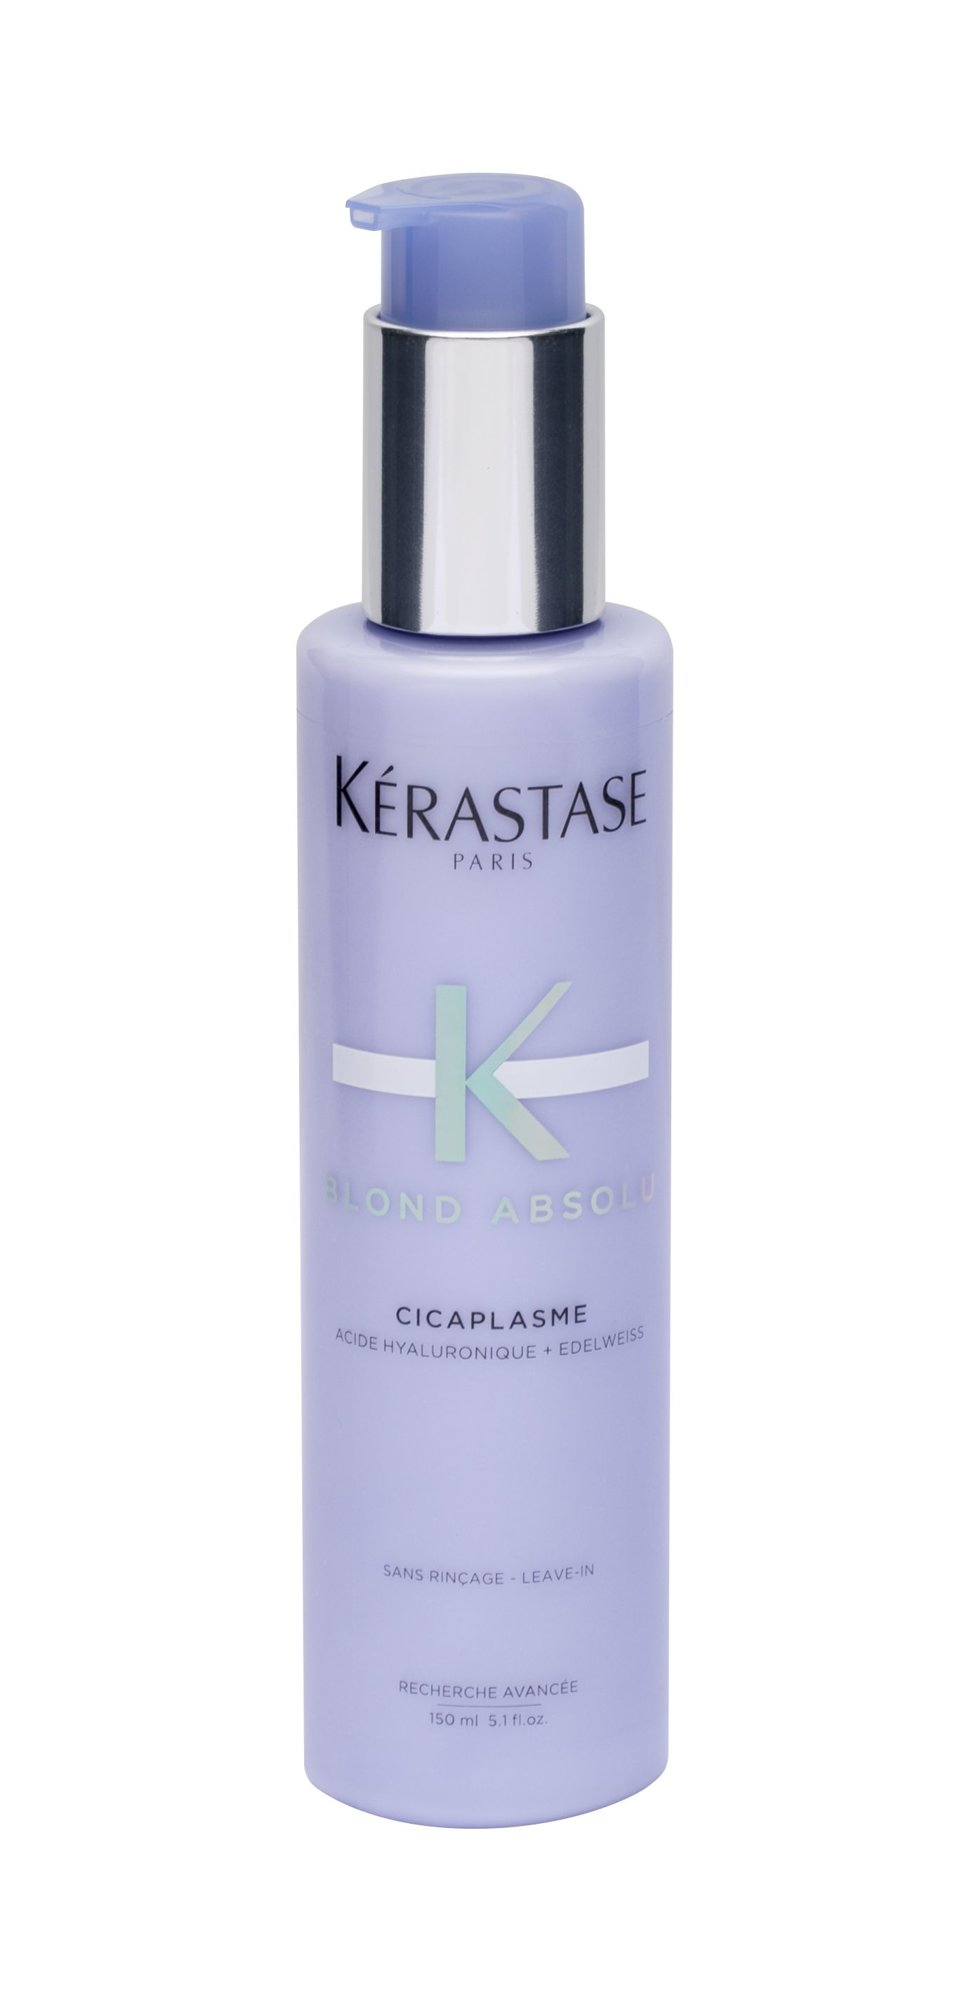 Kérastase Blond Absolu Hair Serum 150ml